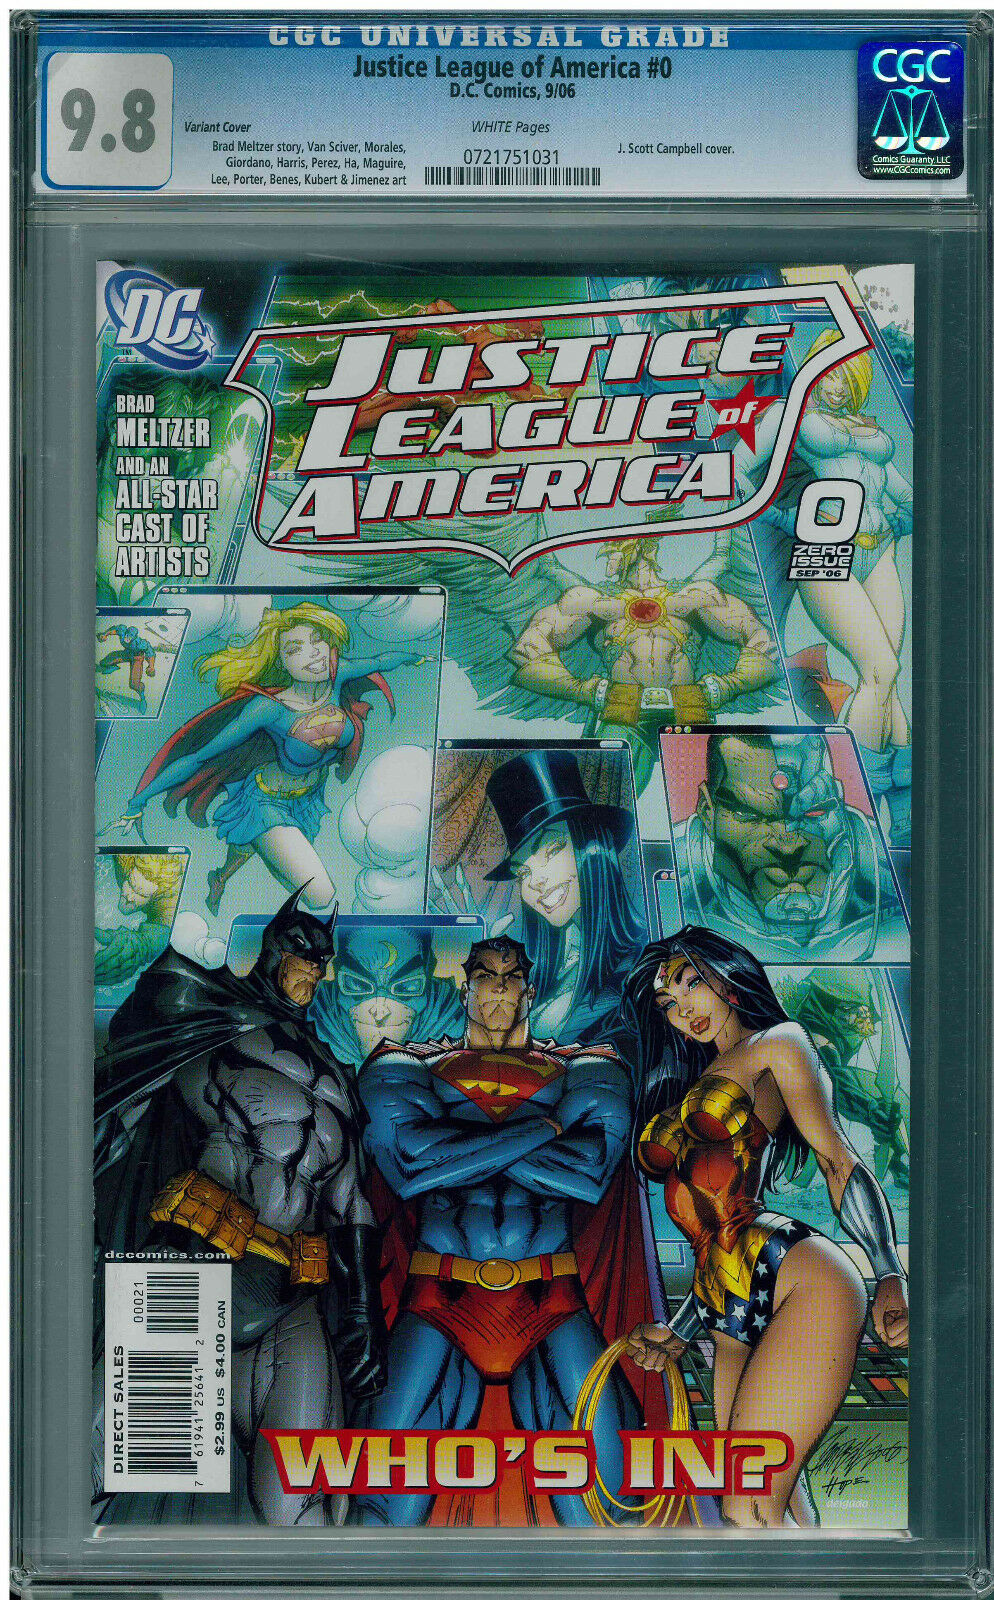 JUSTICE LEAGUE OF AMERICA #0 - J. SCOTT CAMPBELL INCENTIVE VARIANT - CGC 9.8